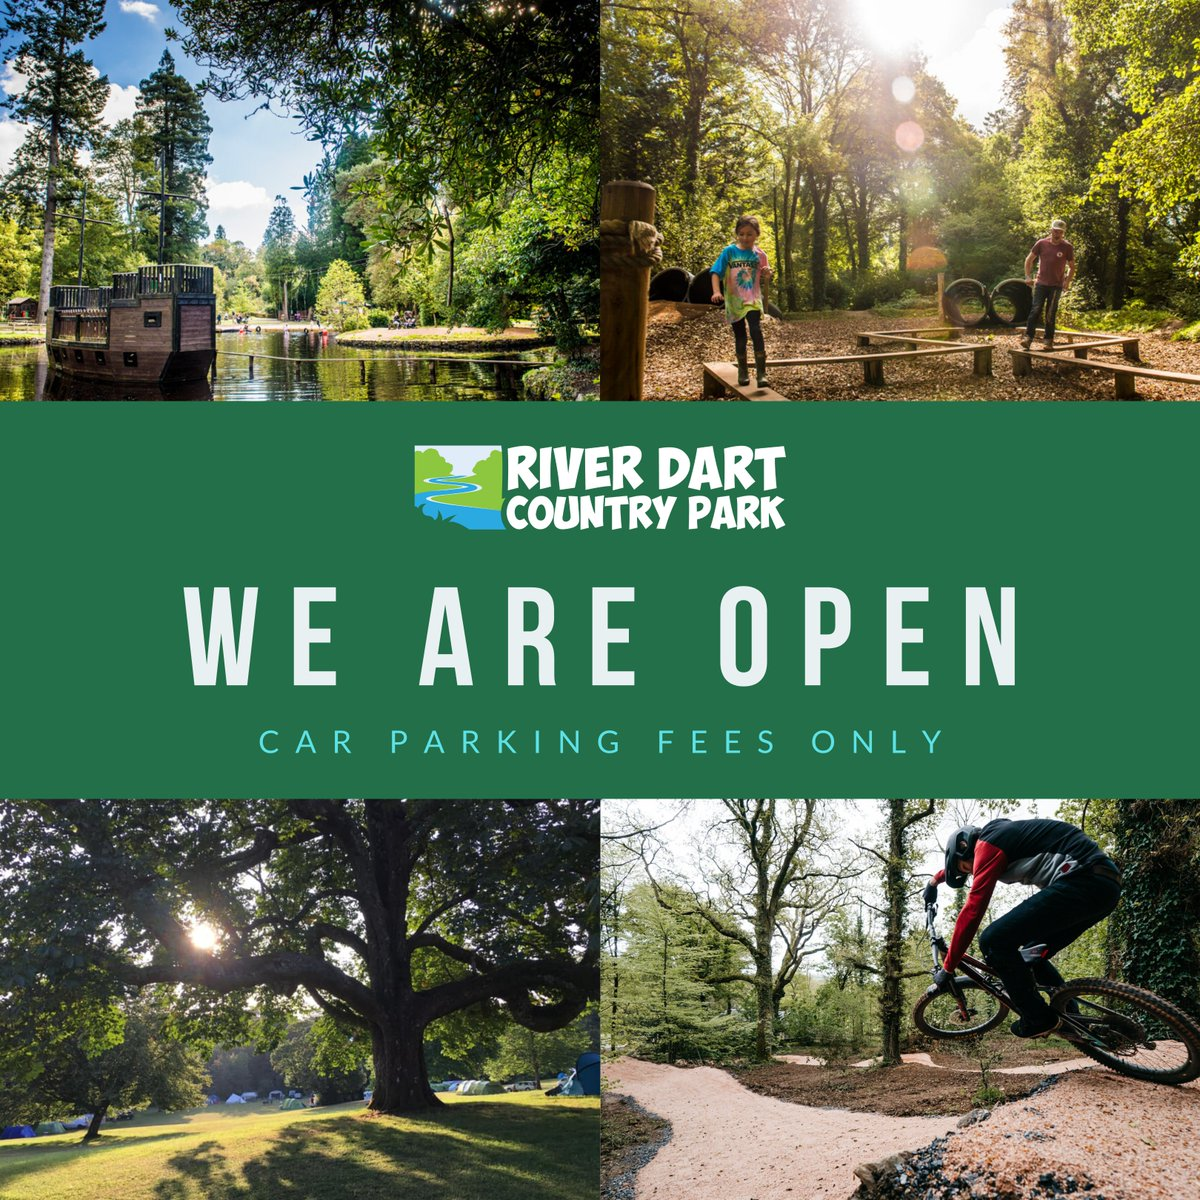 We are OPEN and CAR PARKING FEES ONLY until further notice! 😁👍🌳 Enjoy the fresh air of River Dart Country Park and explore the open space of over 90 acres of beautiful parkland. Visit riverdart.co.uk/opening-times-… for details.